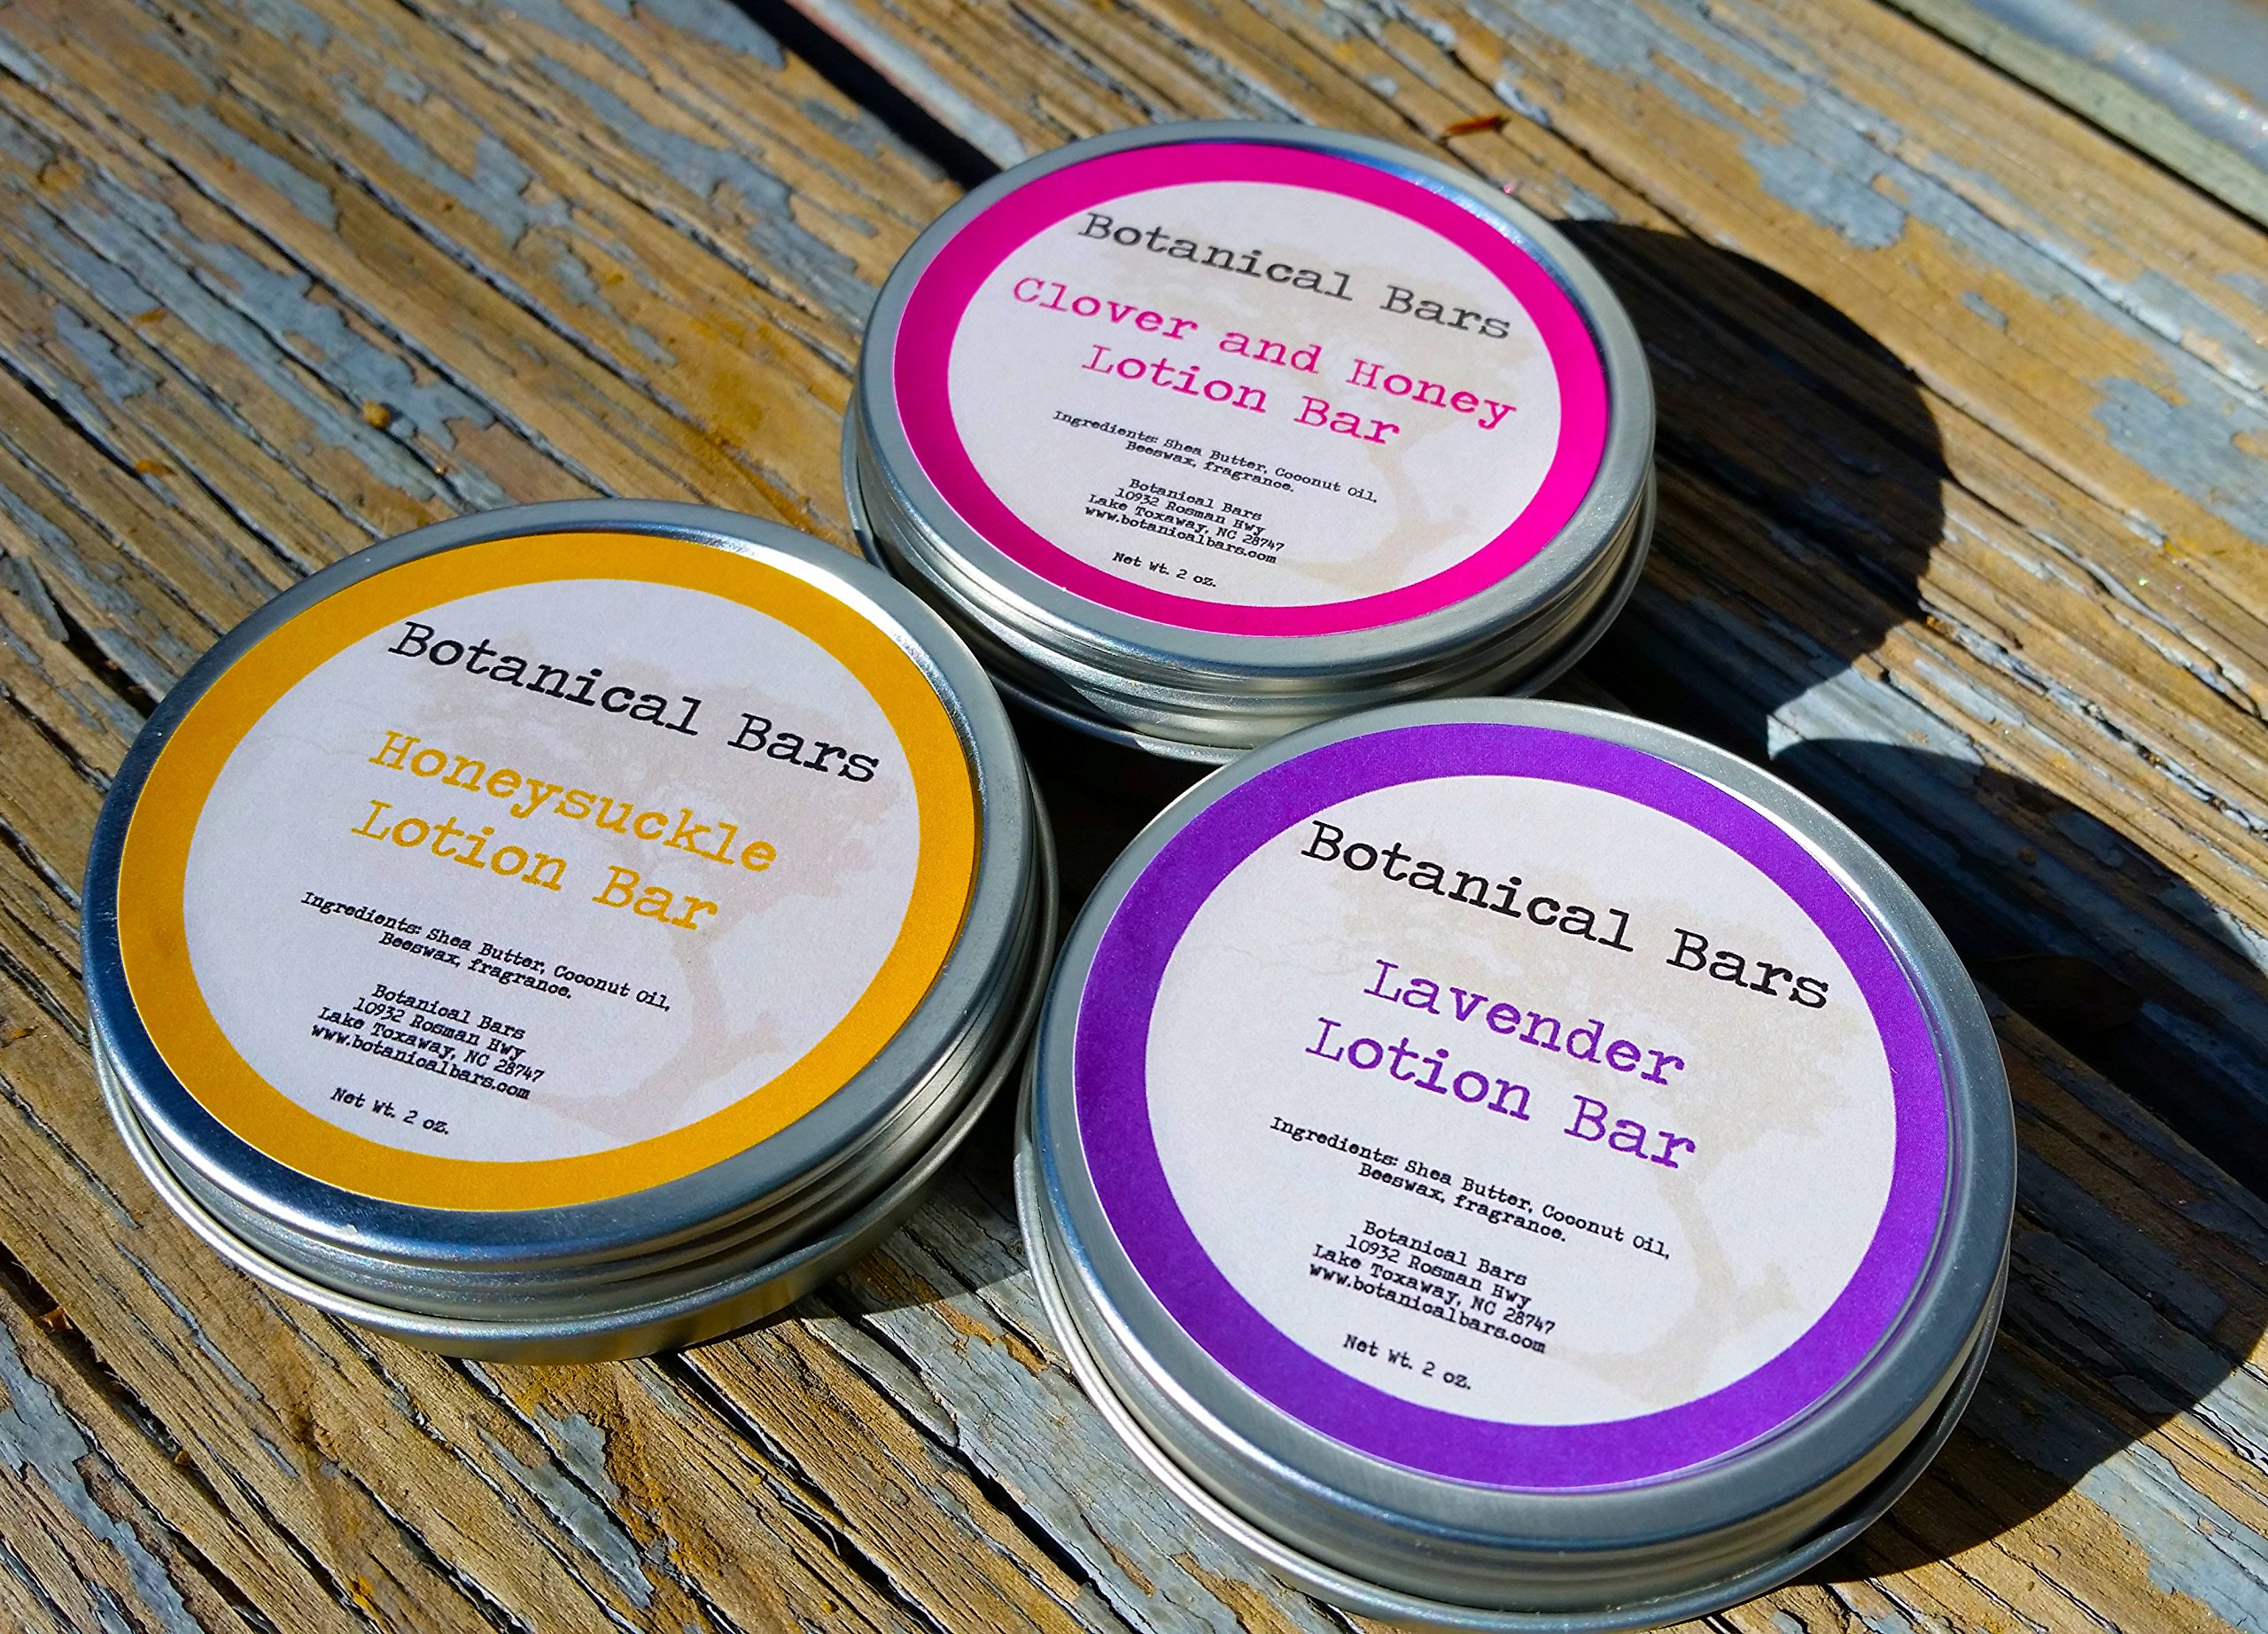 Floral Lotion Bar Set - 3 Lotion Bars 2oz Each - Lavender, Honeysuckle, and Clover and Honey by Botanical Bars